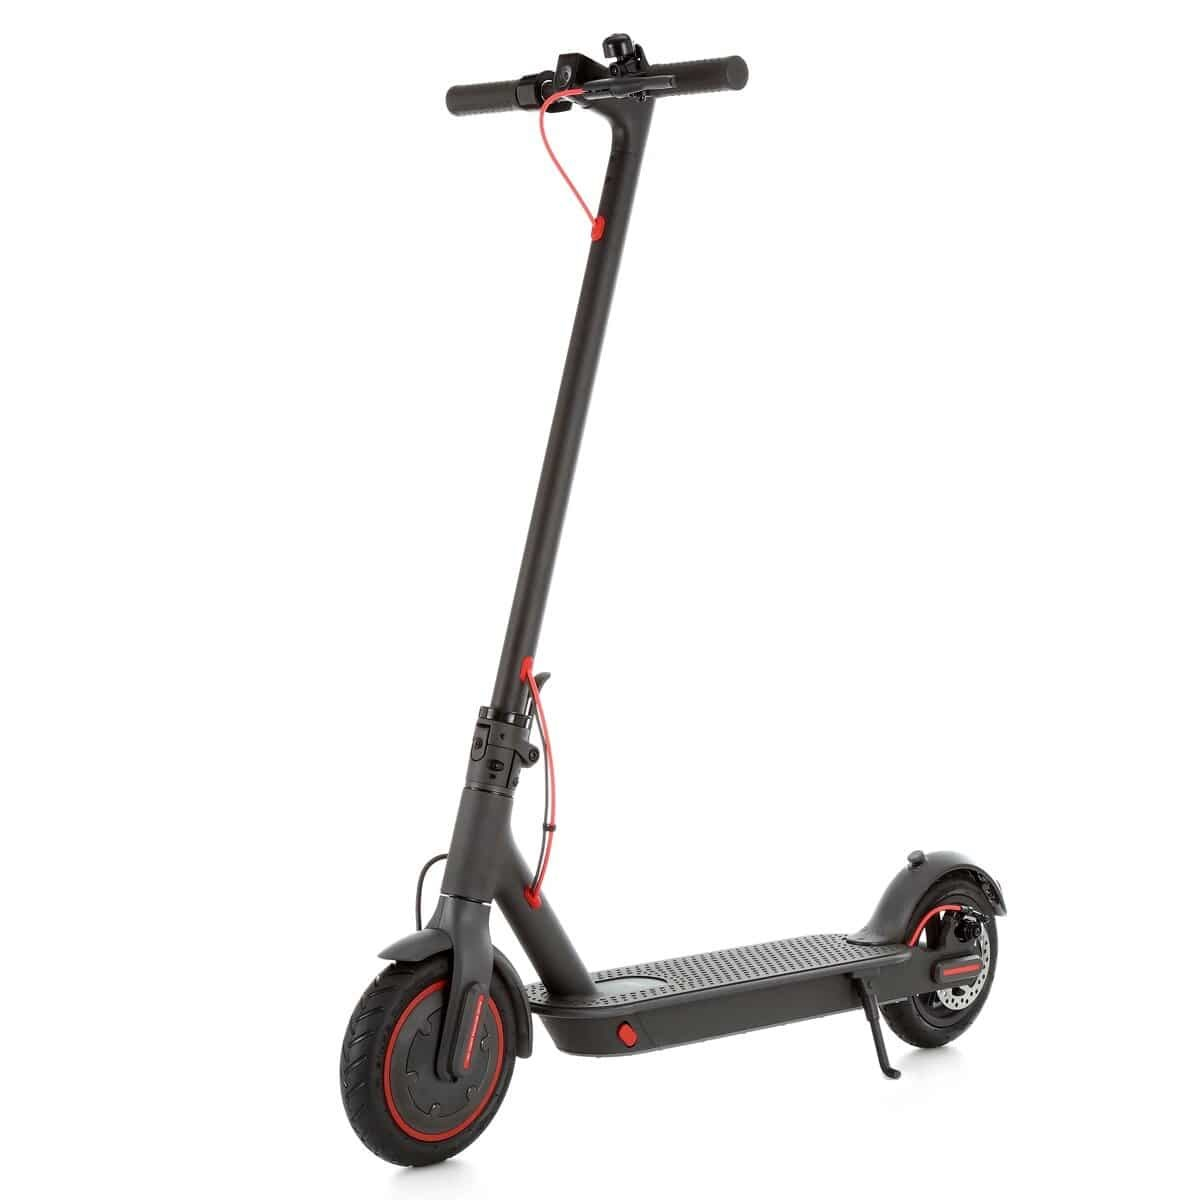 /attachments/255026211066002112028154212037180251244229074178/mi-M365-Pro-scooter-10.jpg